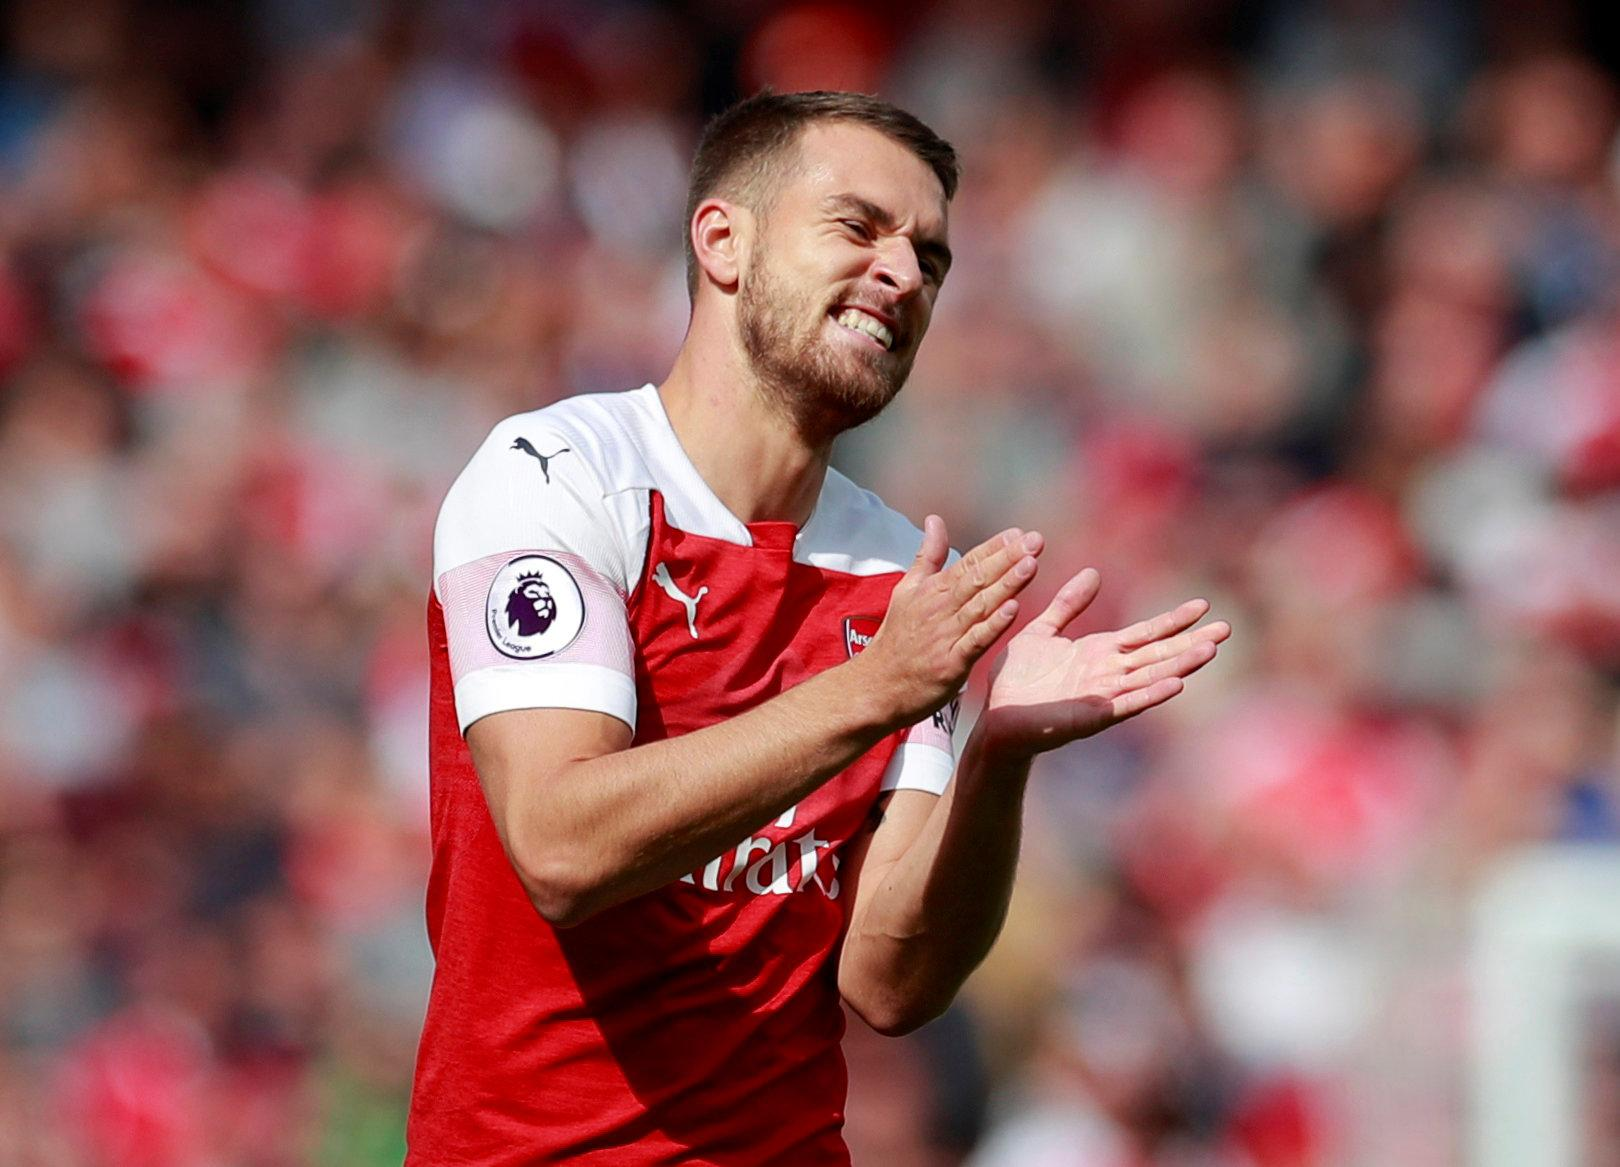 Arsenal have seen talks stall over a new £250,000-a-week deal for Aaron Ramsey